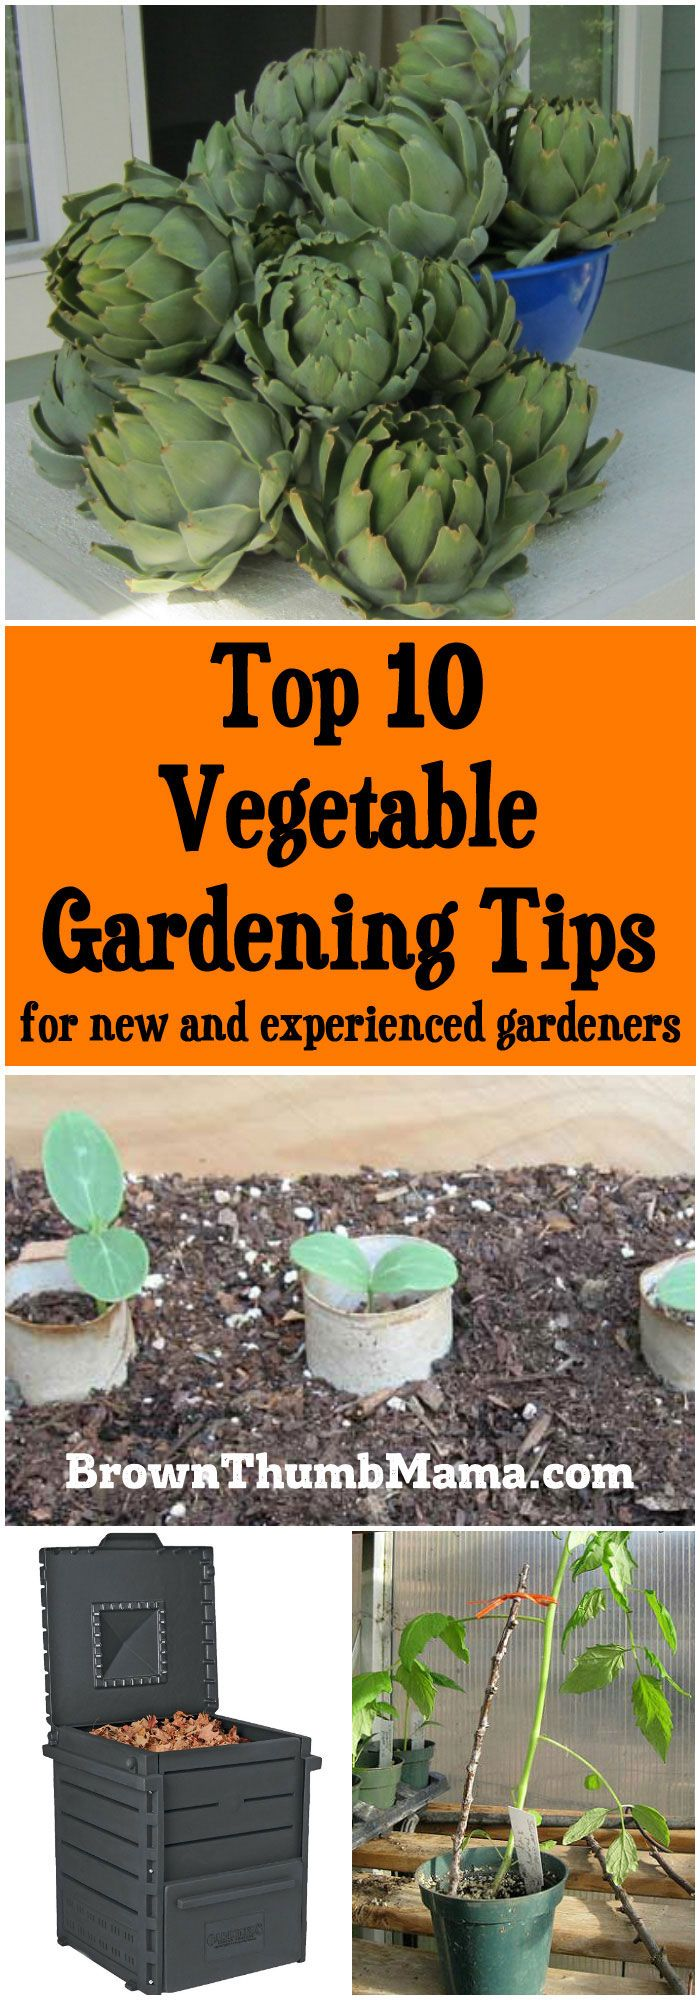 I love vegetable gardening, and as always, some years are better than others. Here are my top 10 vegetable gardening tips for new and experienced gardeners.